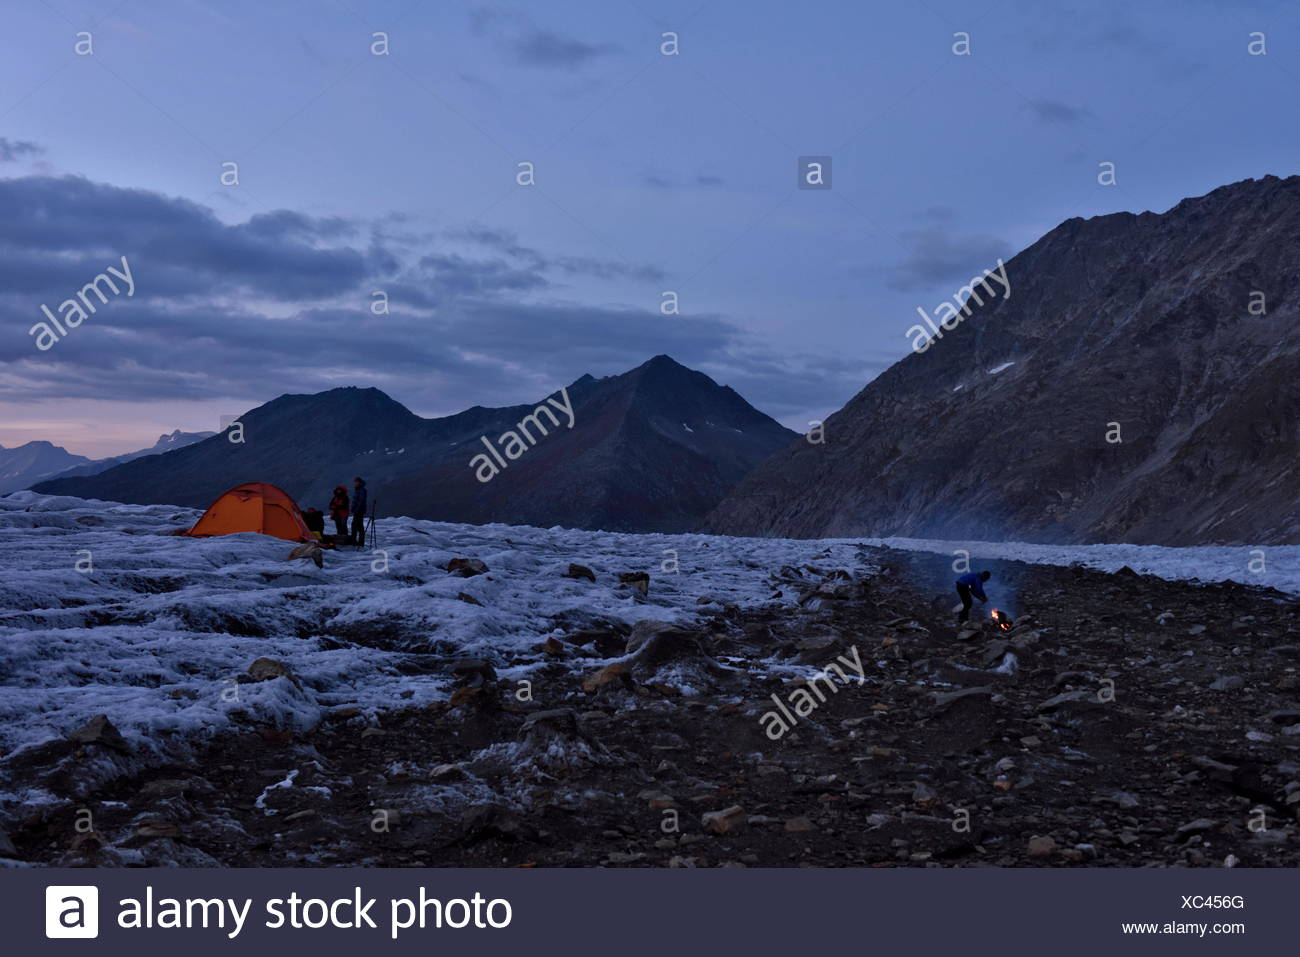 The team of Italian cave explorers settle into the evening at their base camp on the Aletschgletscher. Warm twilight illuminates the orange tents - Stock Image